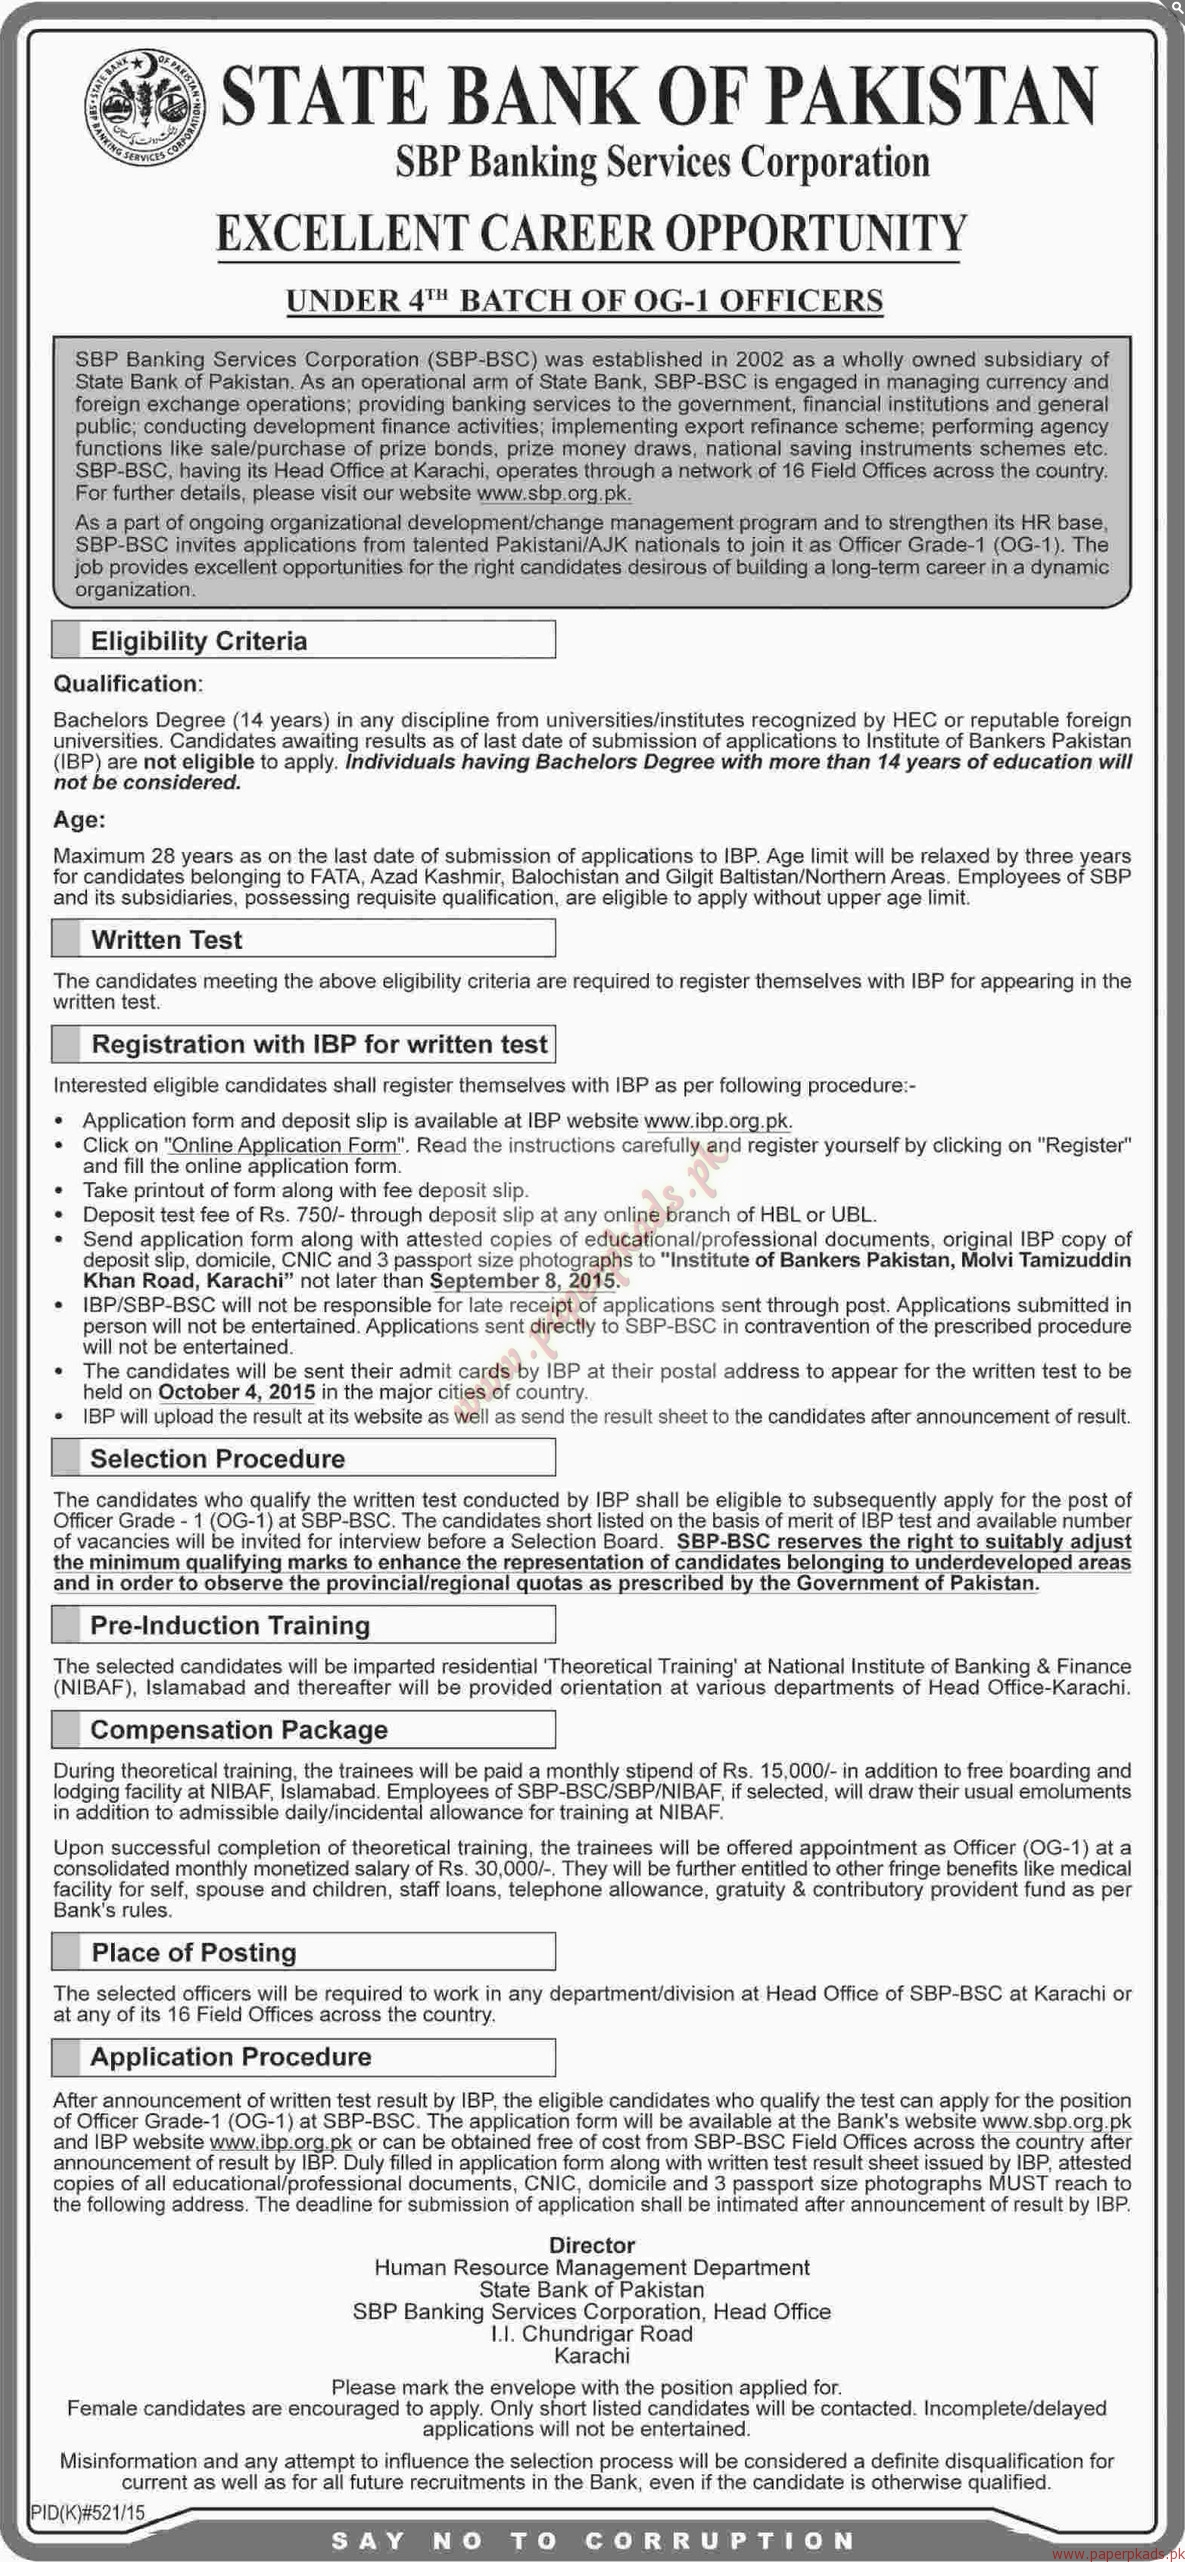 State bank of pakistan jobs dawn jobs ads 23 august 2015 paperpk state bank of pakistan jobs dawn jobs ads 23 august 2015 falaconquin